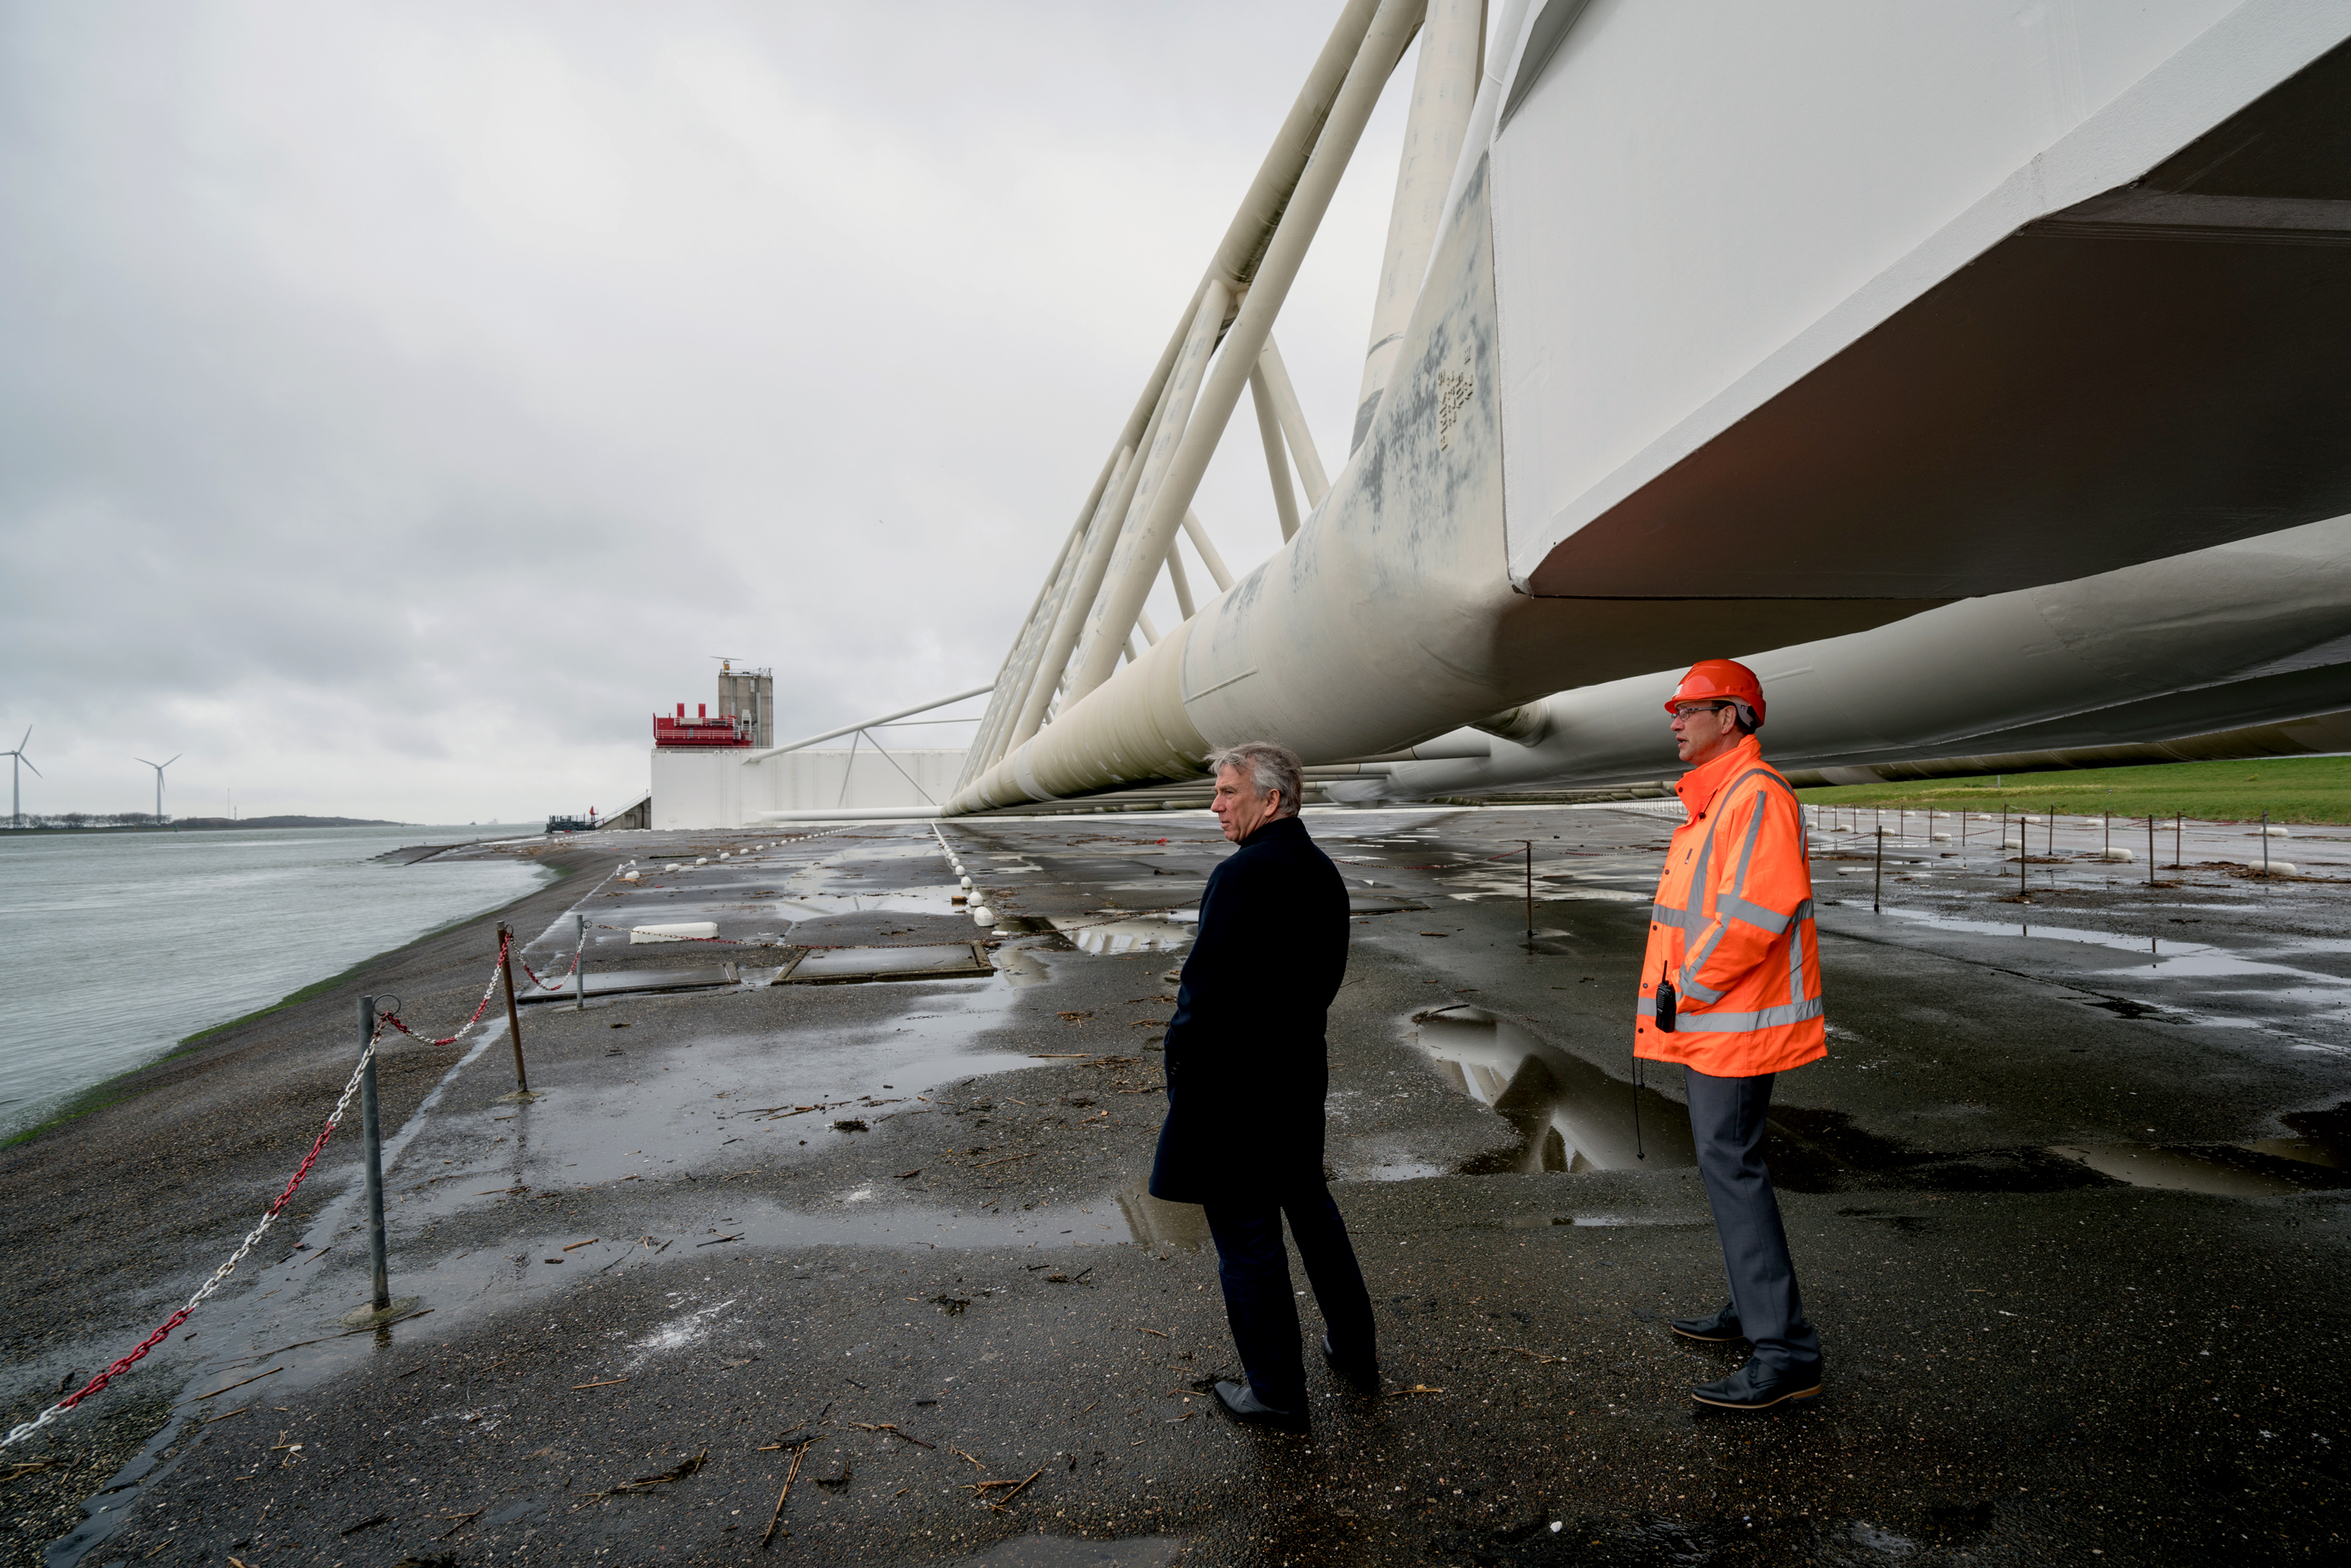 Piet Dircke (left) looks across the Nieuwe Waterweg from beneath one of the giant arms of the Maeslantkering storm surge barrier.